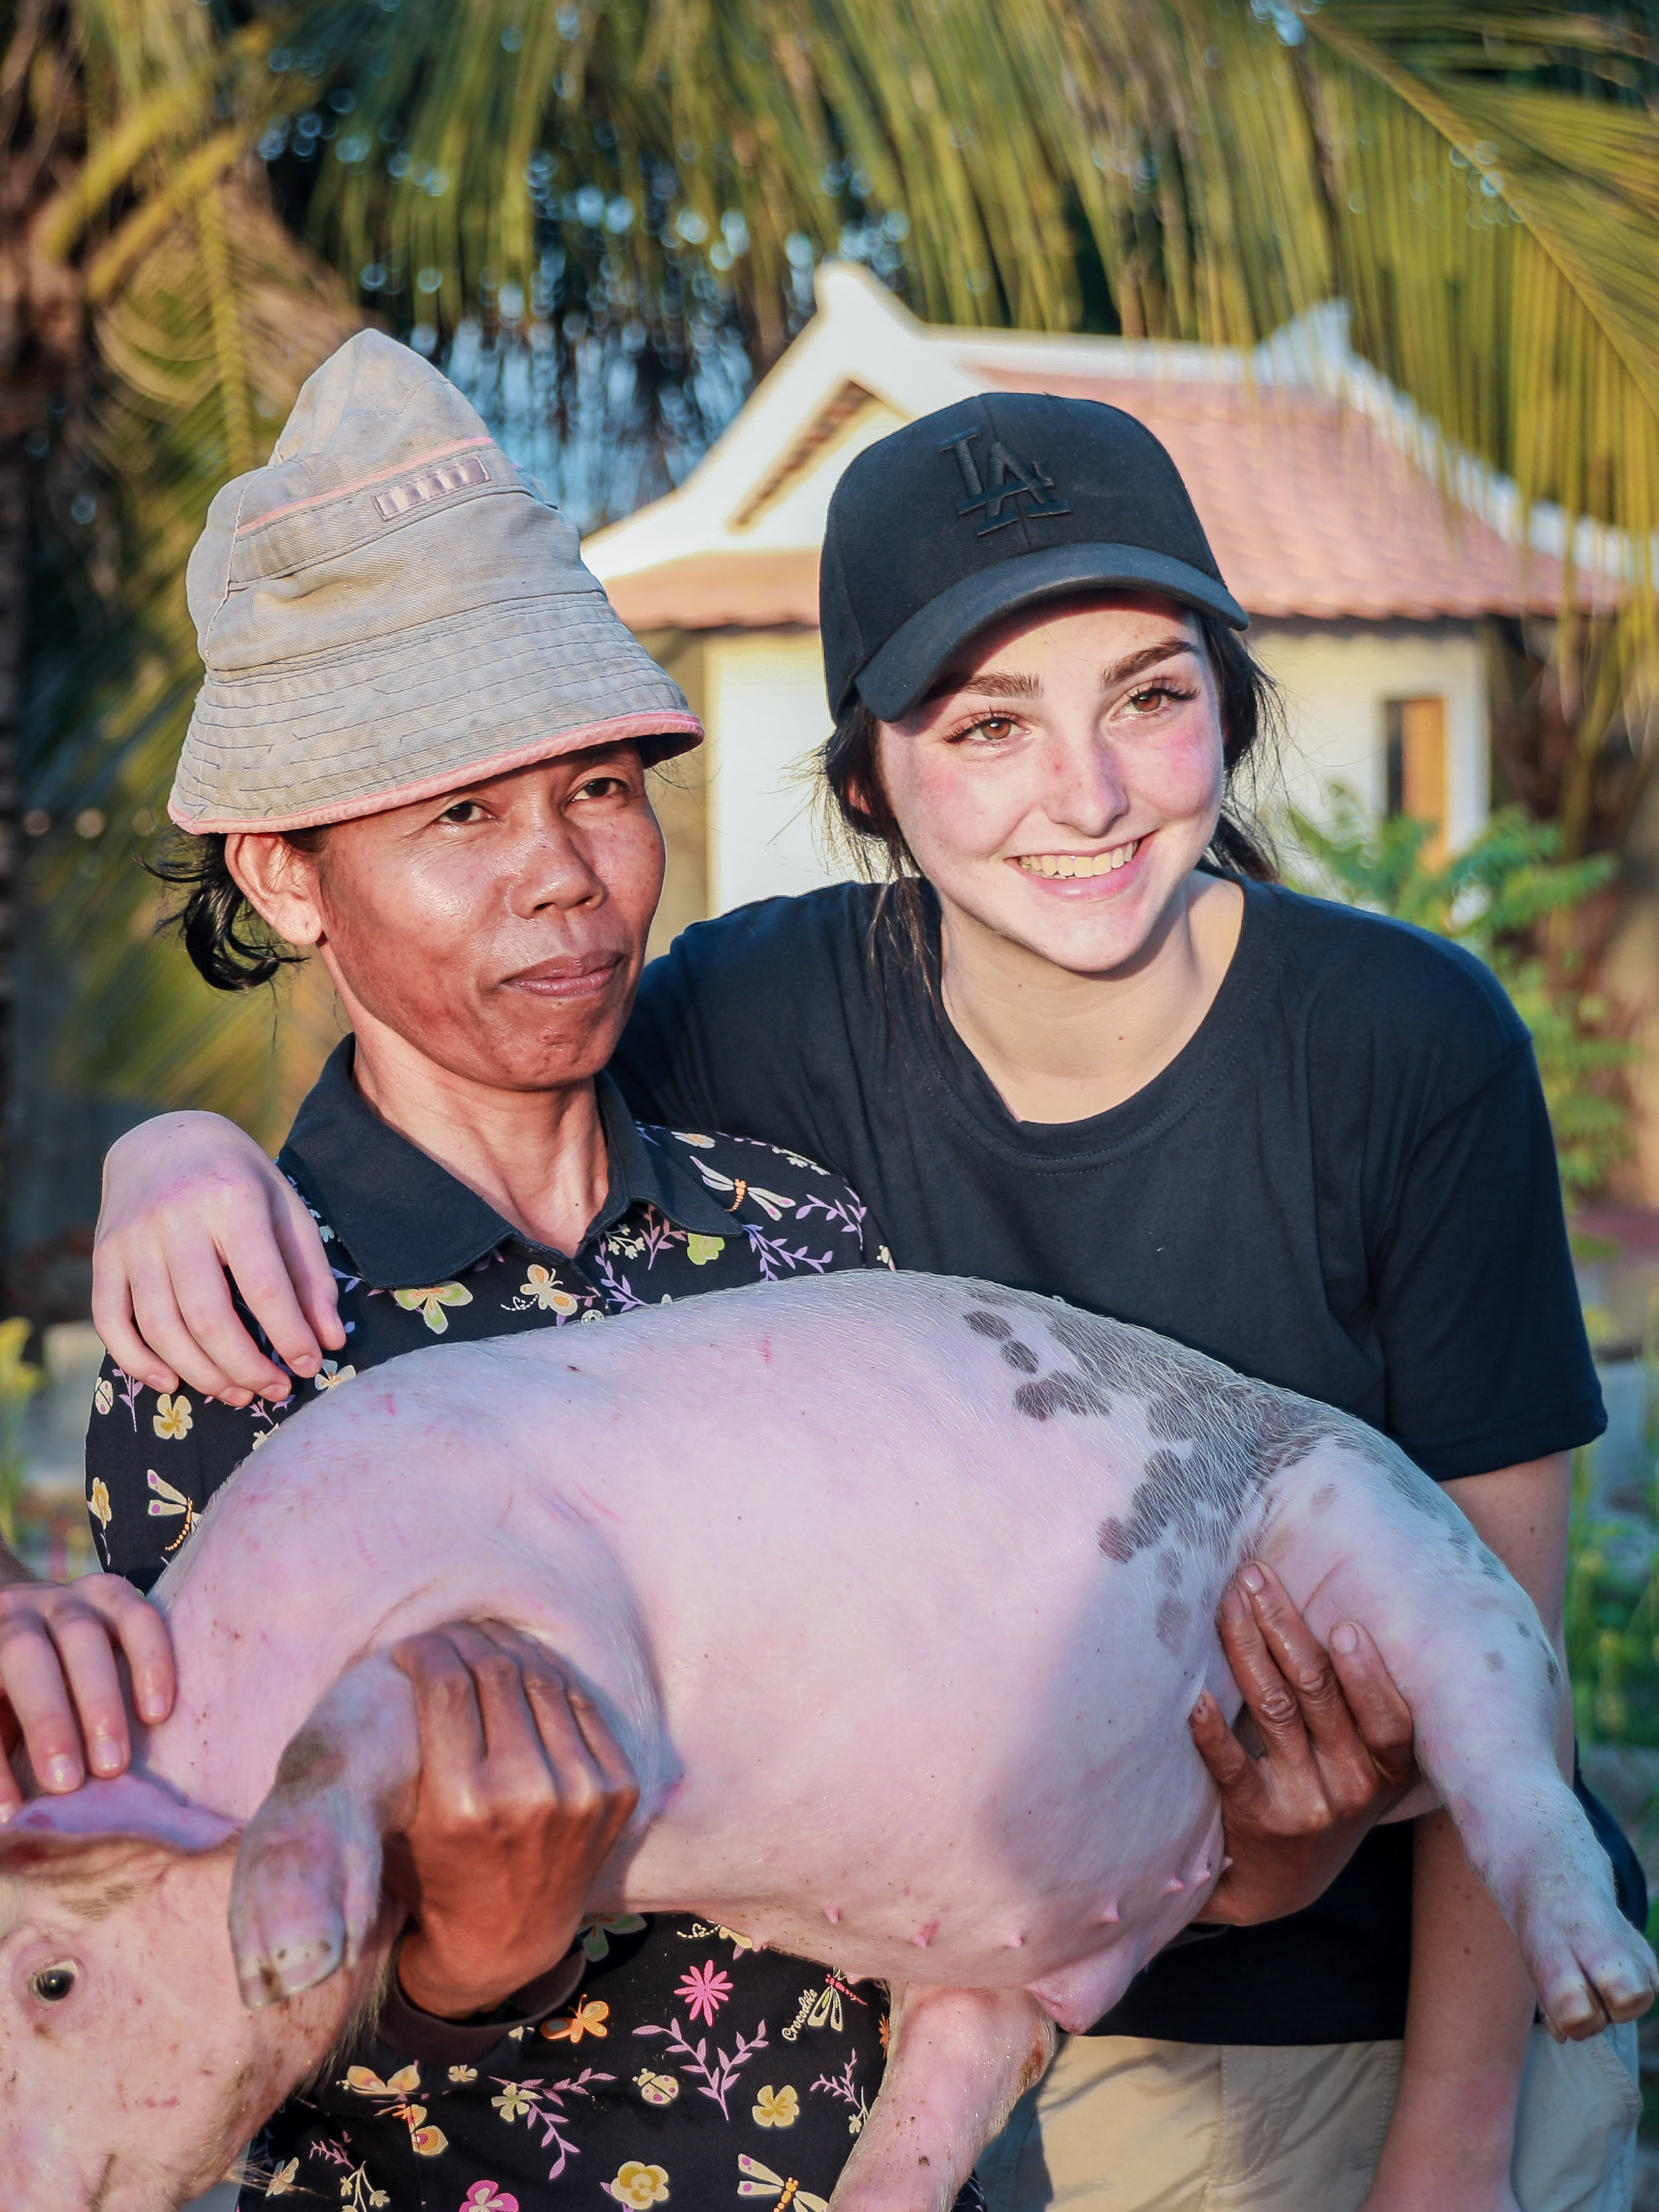 Donating pigs for breeding so families can generate an income.